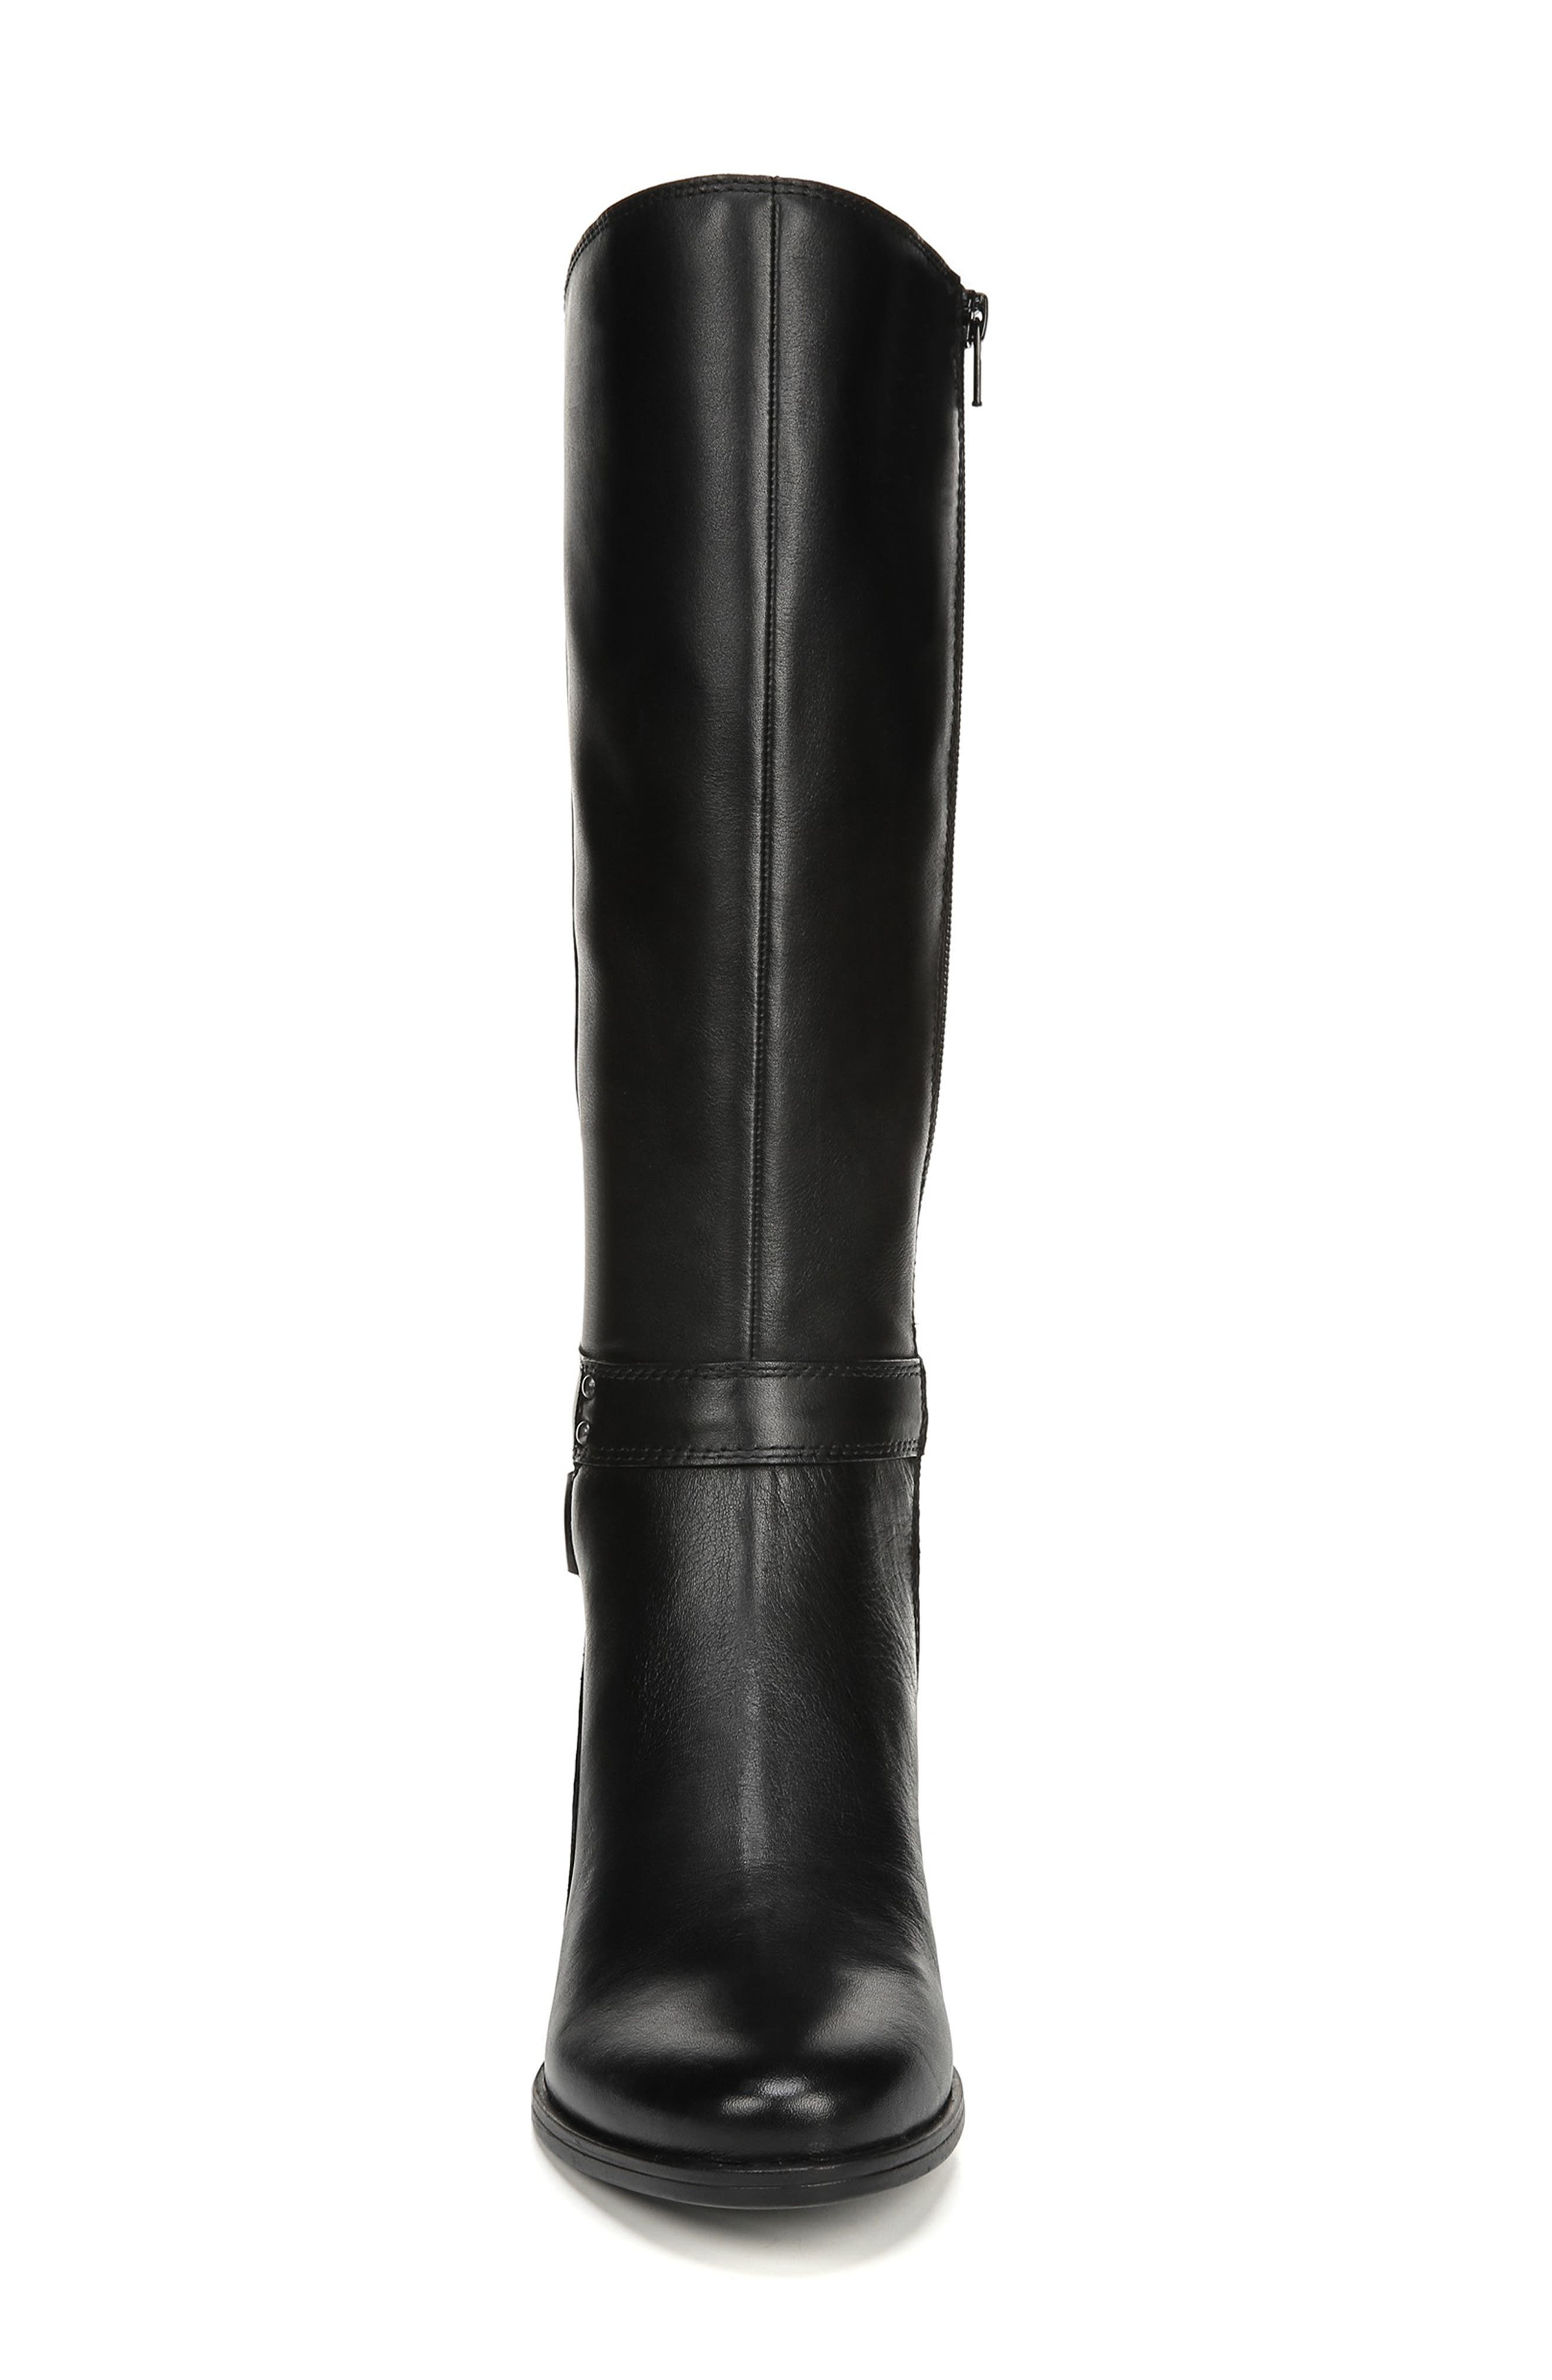 NATURALIZER, Dane Knee High Riding Boot, Alternate thumbnail 4, color, BLACK LEATHER